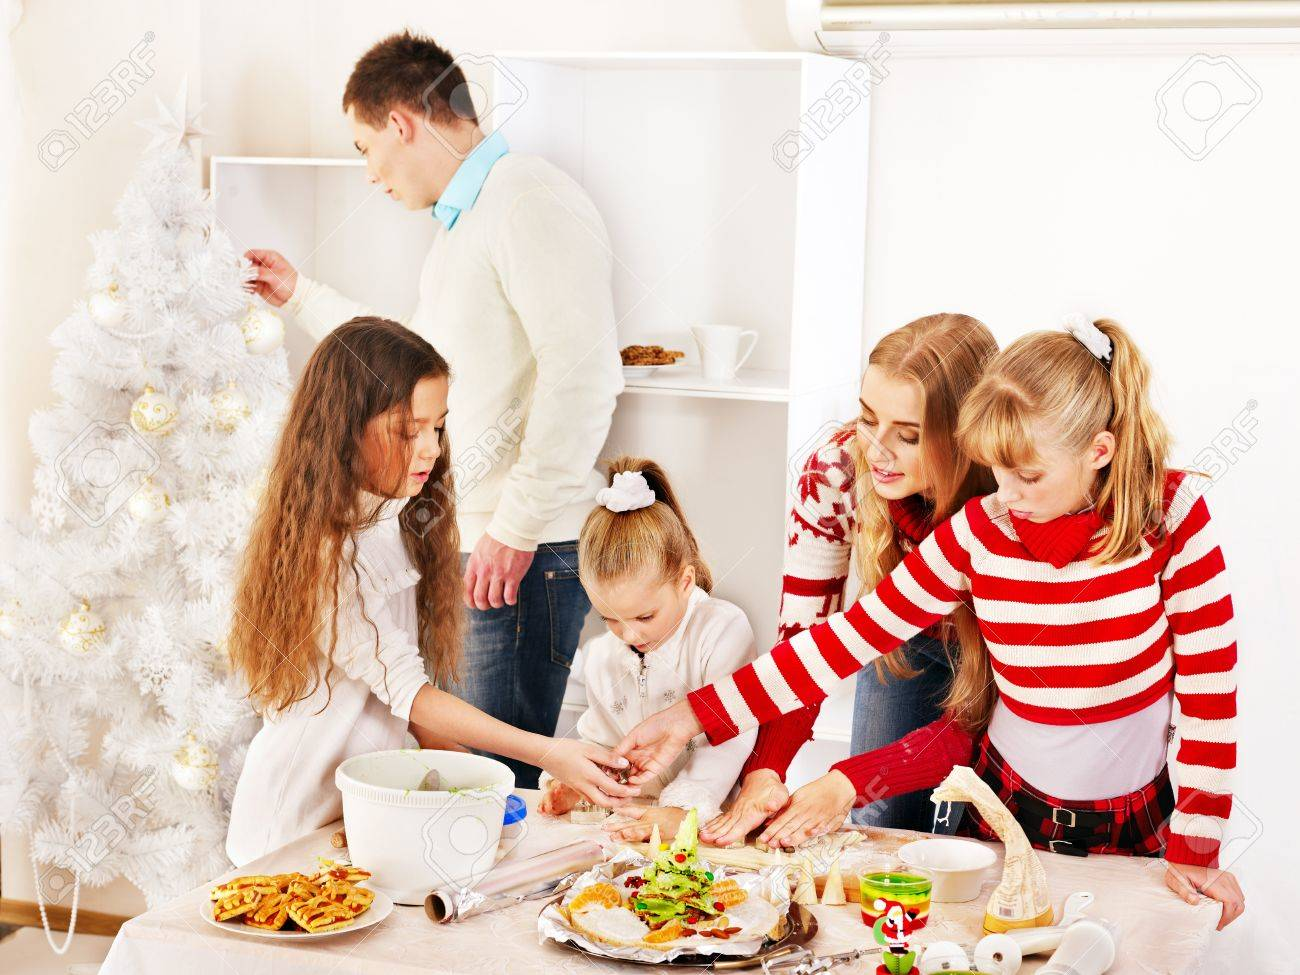 Christmas Kitchen Happy Family With Children Rolling Dough In Christmas Kitchen